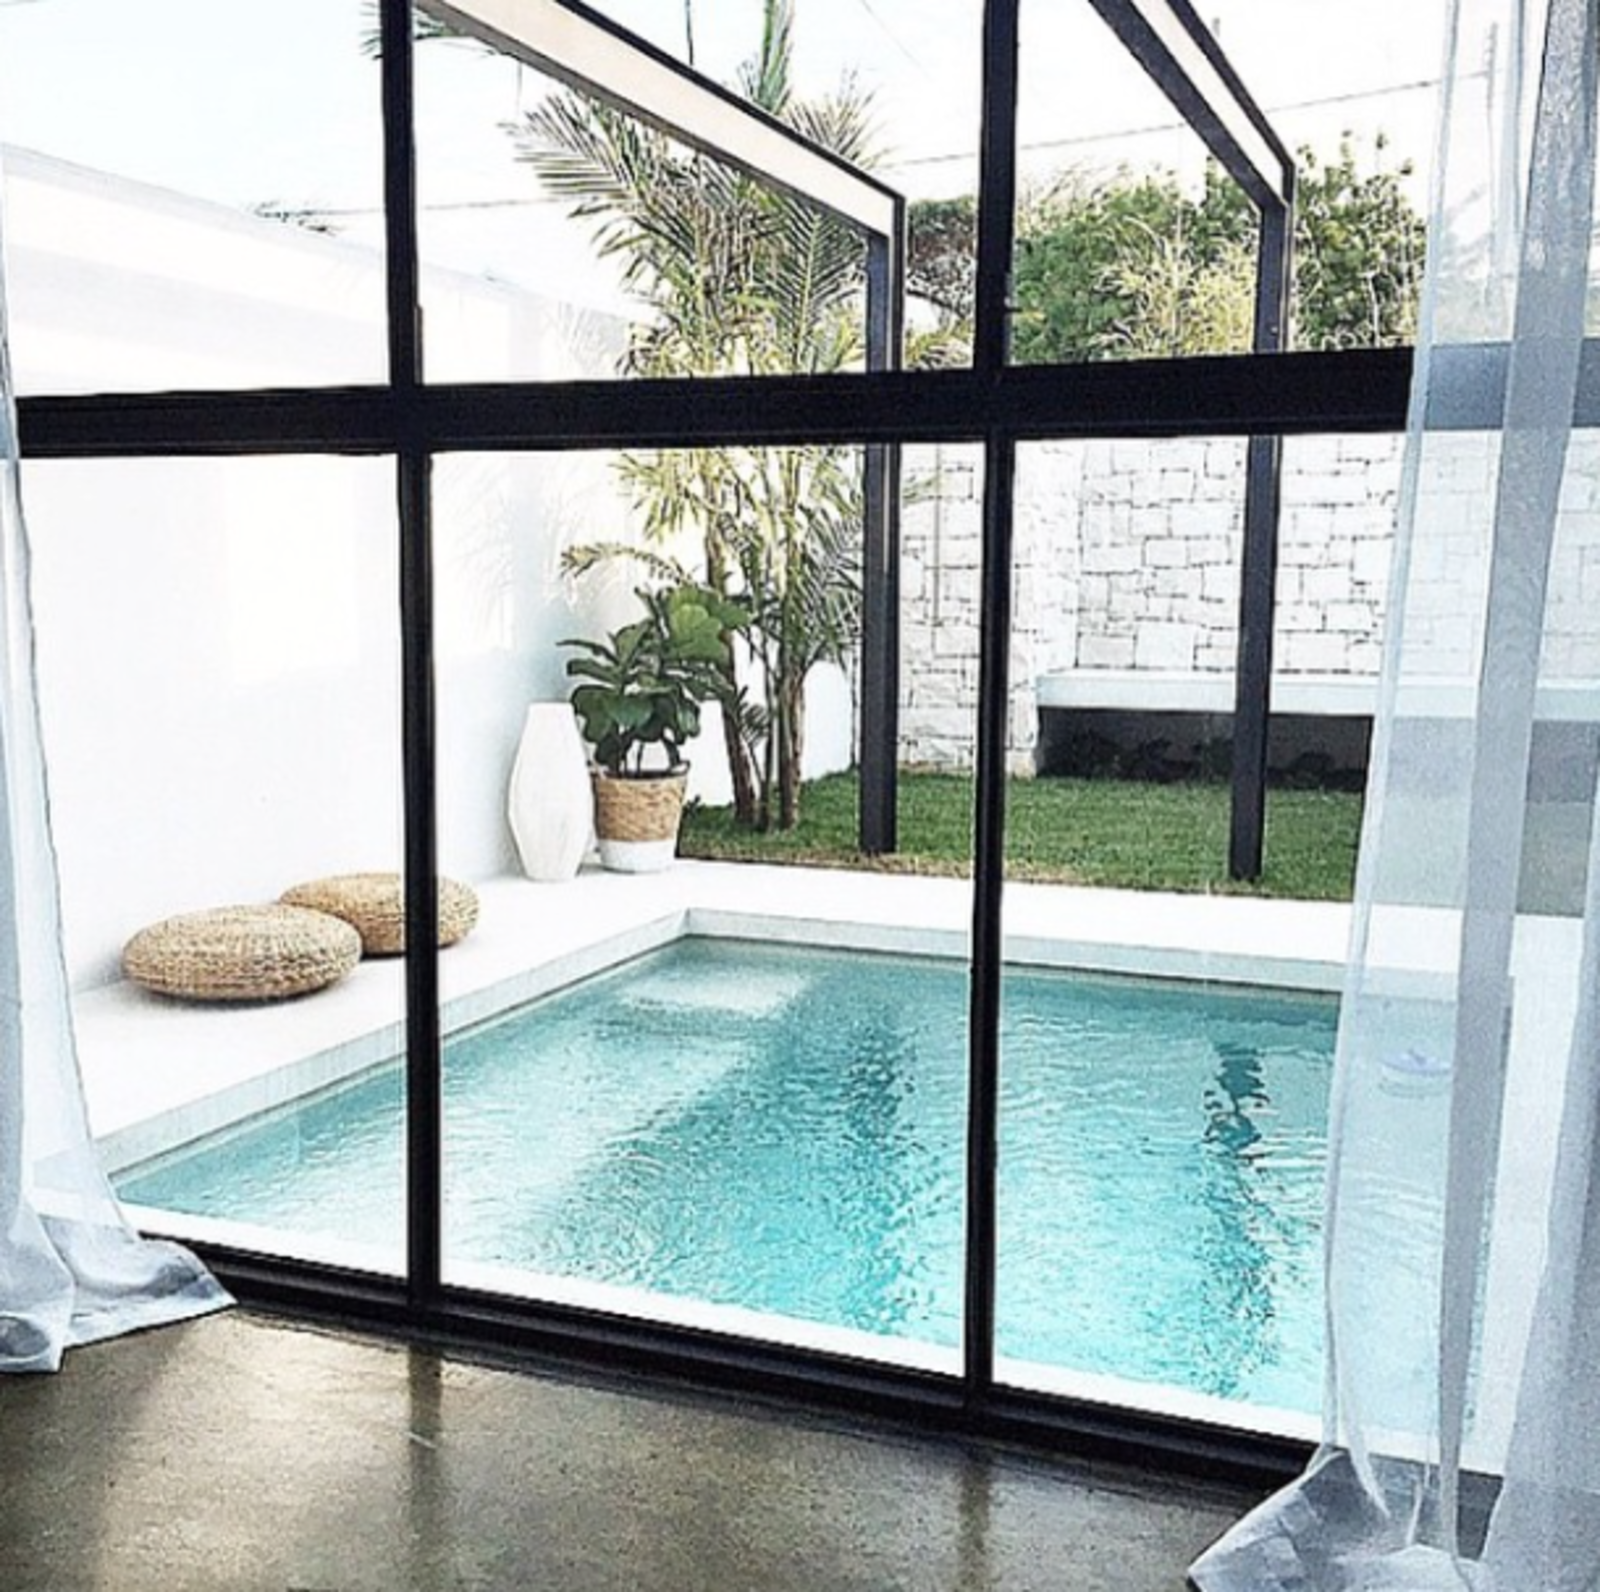 @mon_palmer: A decision to change our sliding door to steel bifold windows opened up a completely new option as to how we could design our garden. The before and afters are dramatically different.  Modern Pool Design by Dwell from Photos of the Week: 7 Inspiring Outdoor Spaces from Our Readers